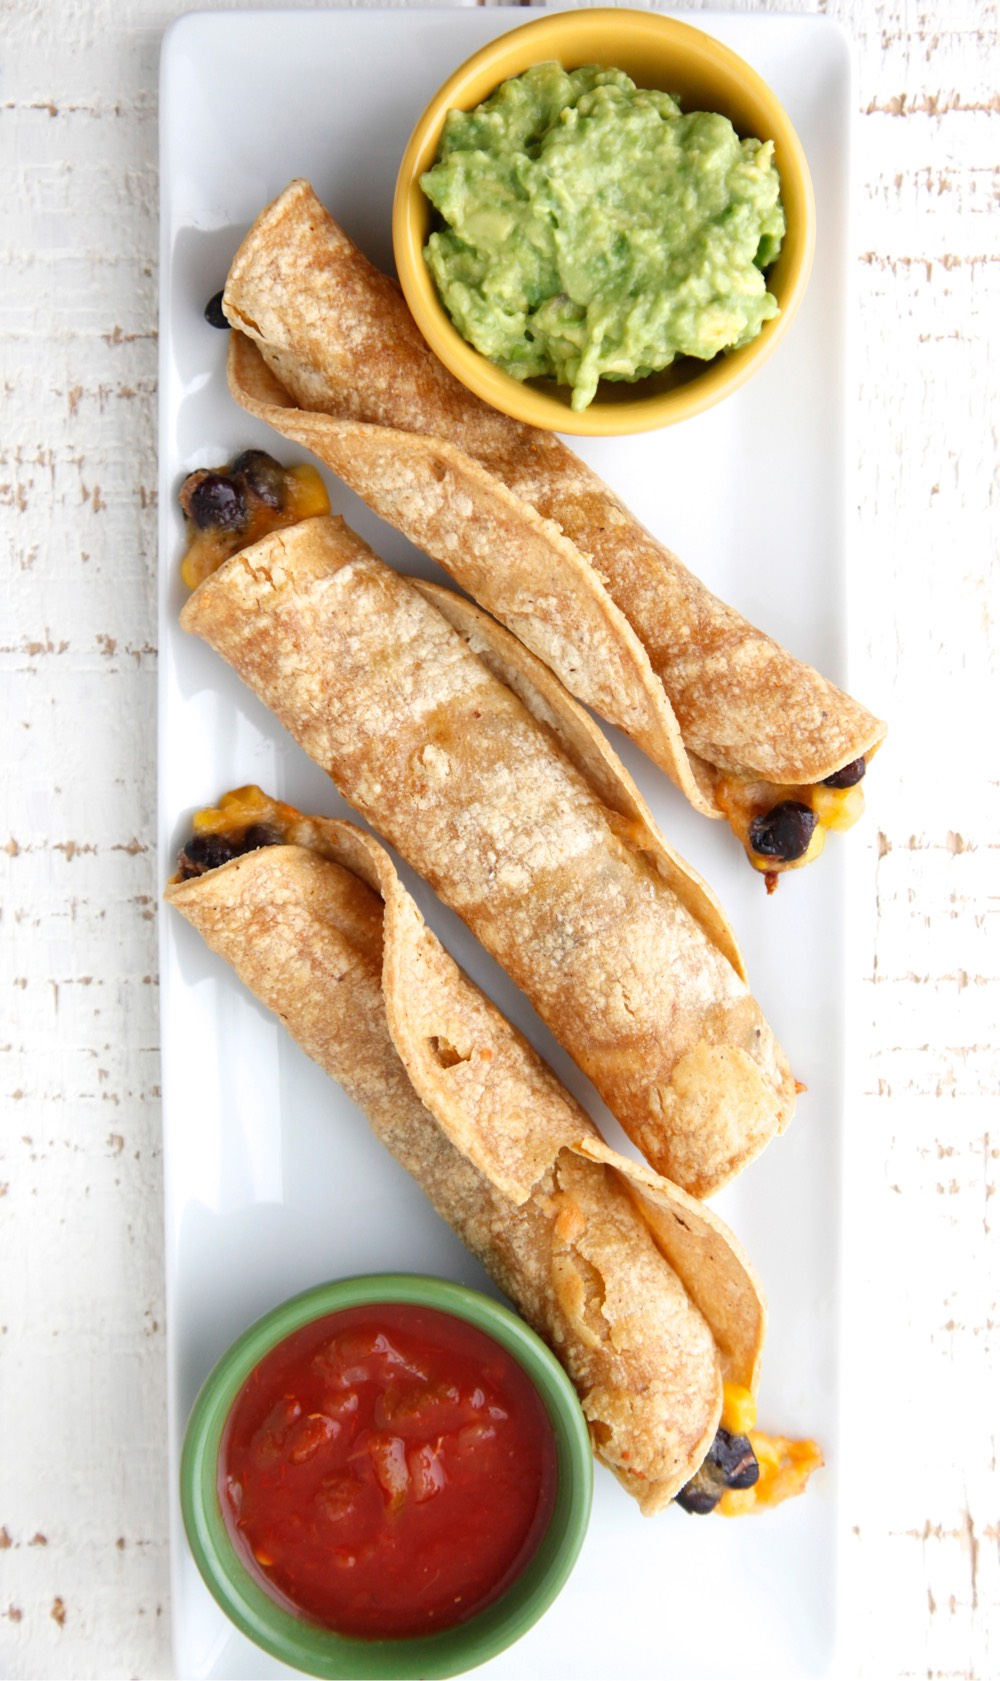 Vegetarian Baked Taquitos from Weelicious